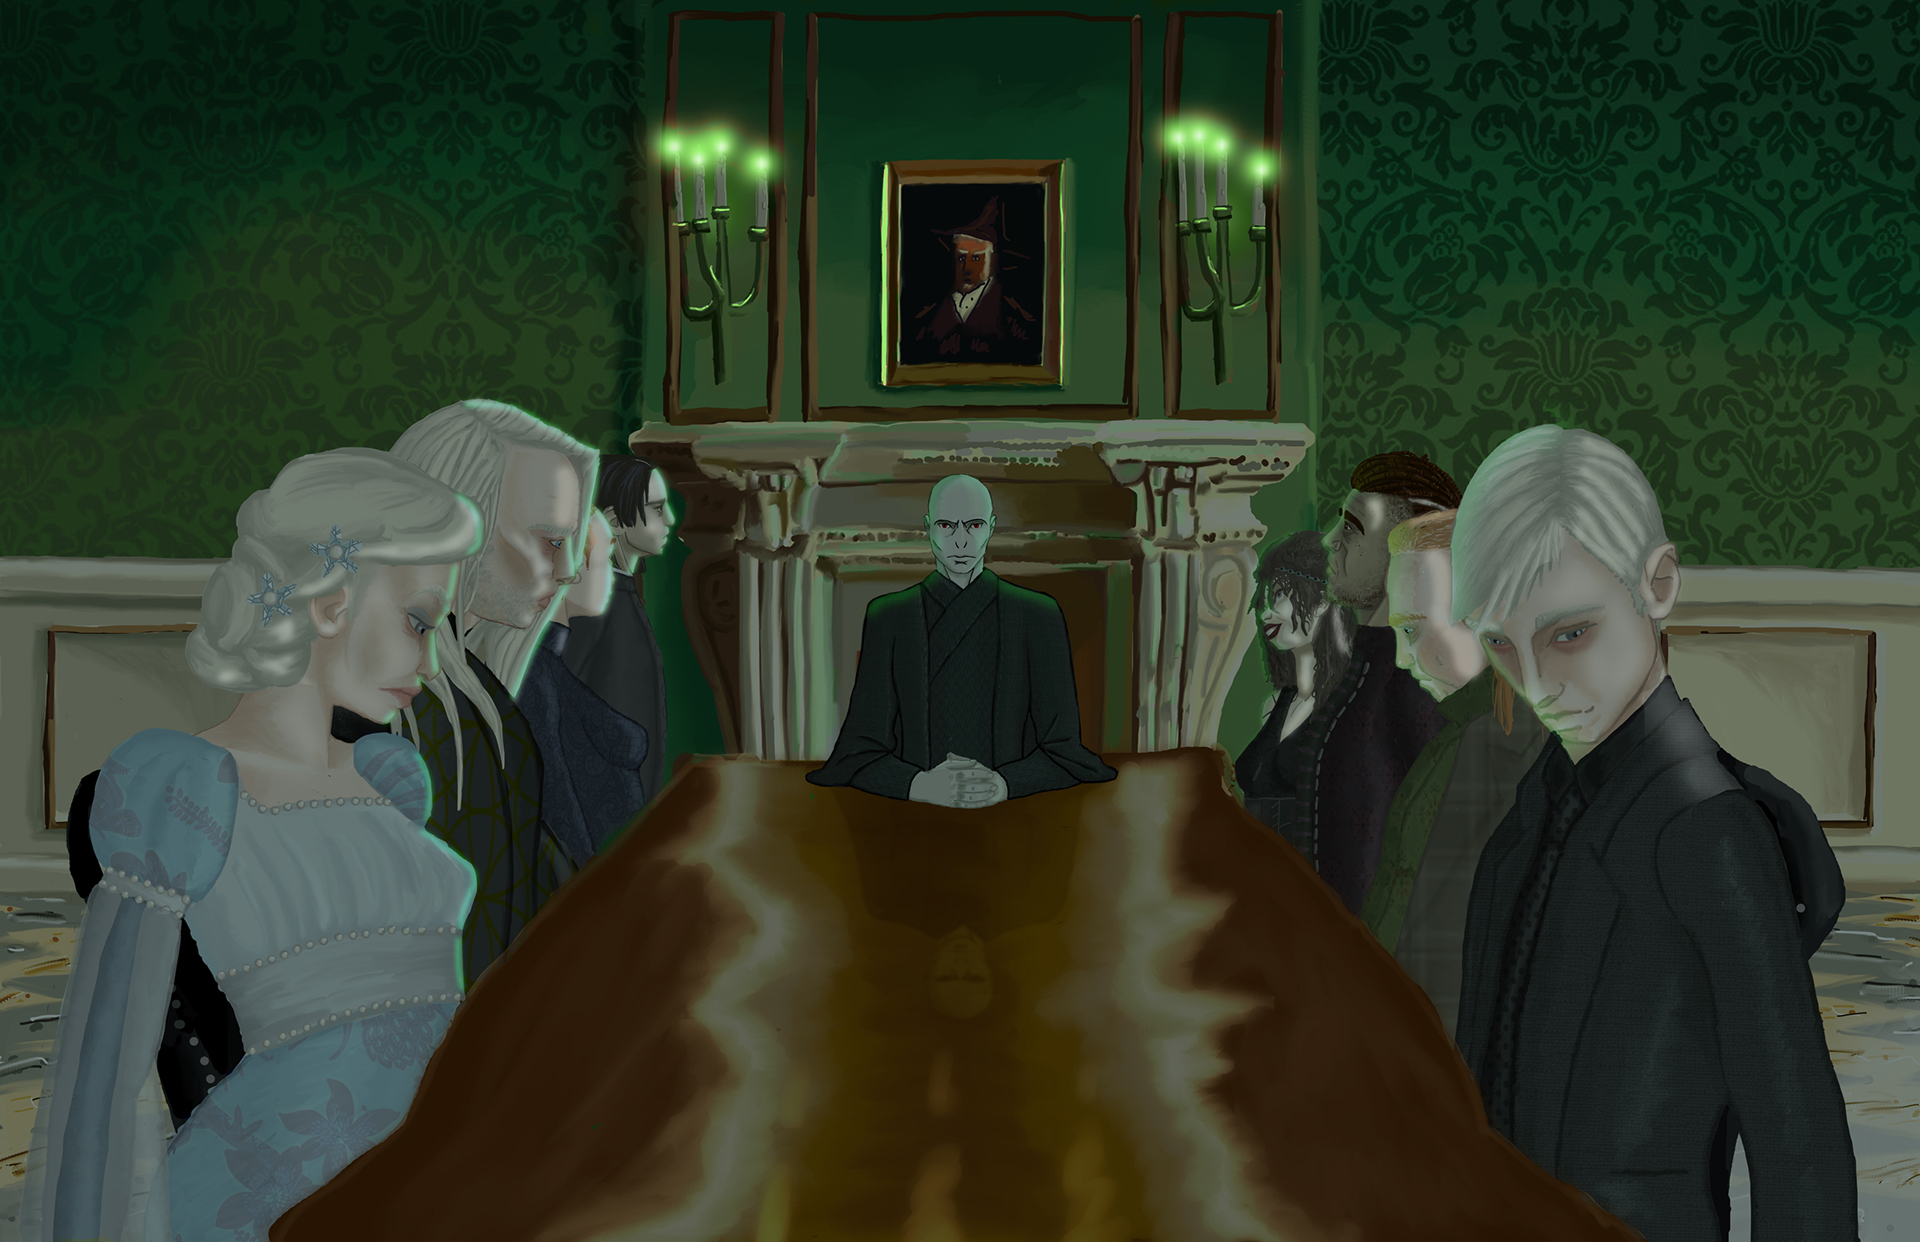 Harry Potter: Death Eater's at Malfoy Manor on Behance